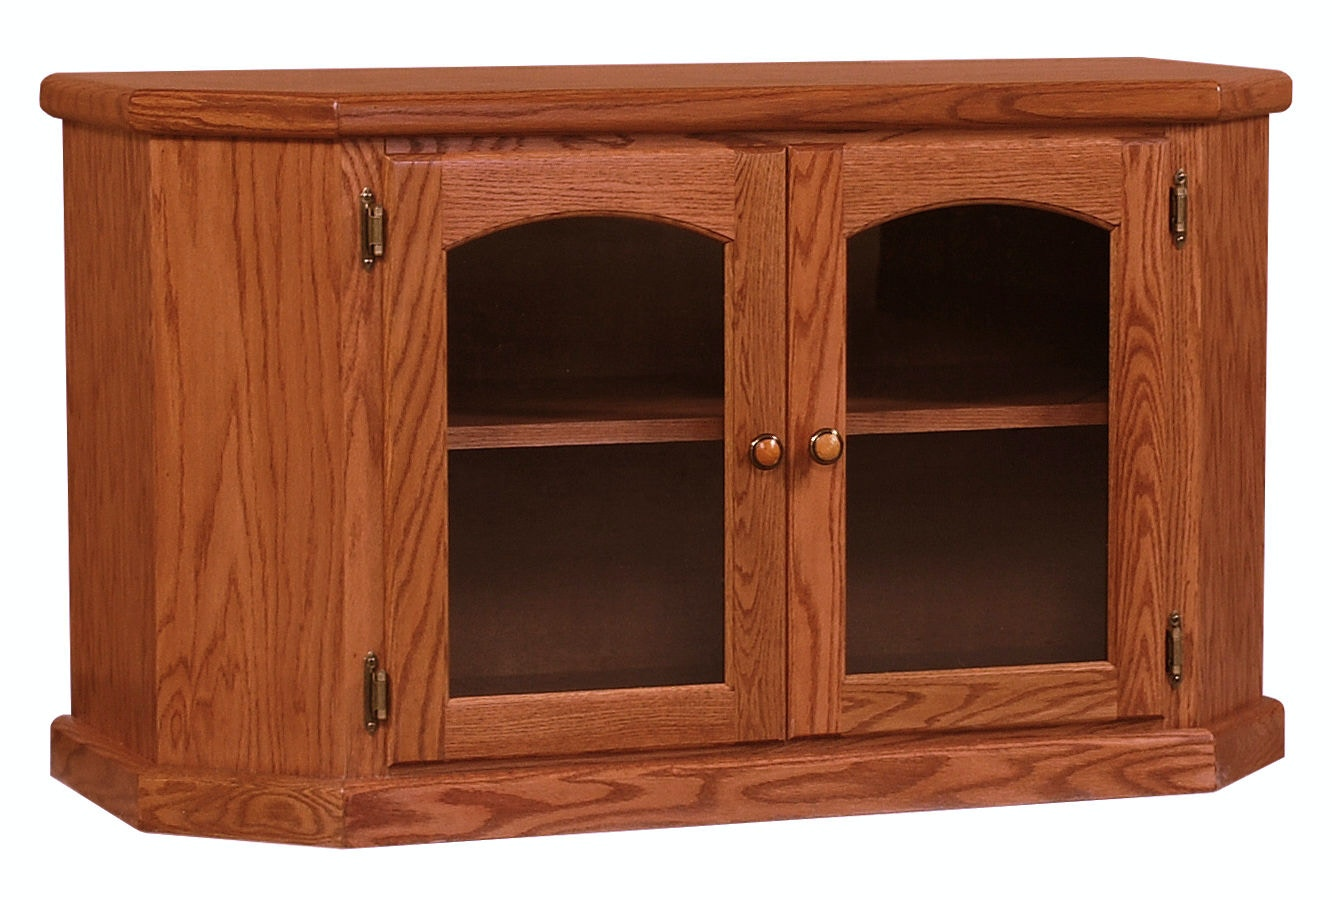 Willow Valley Living Room Angled Front Tv Stand 42 Inch Wv3442